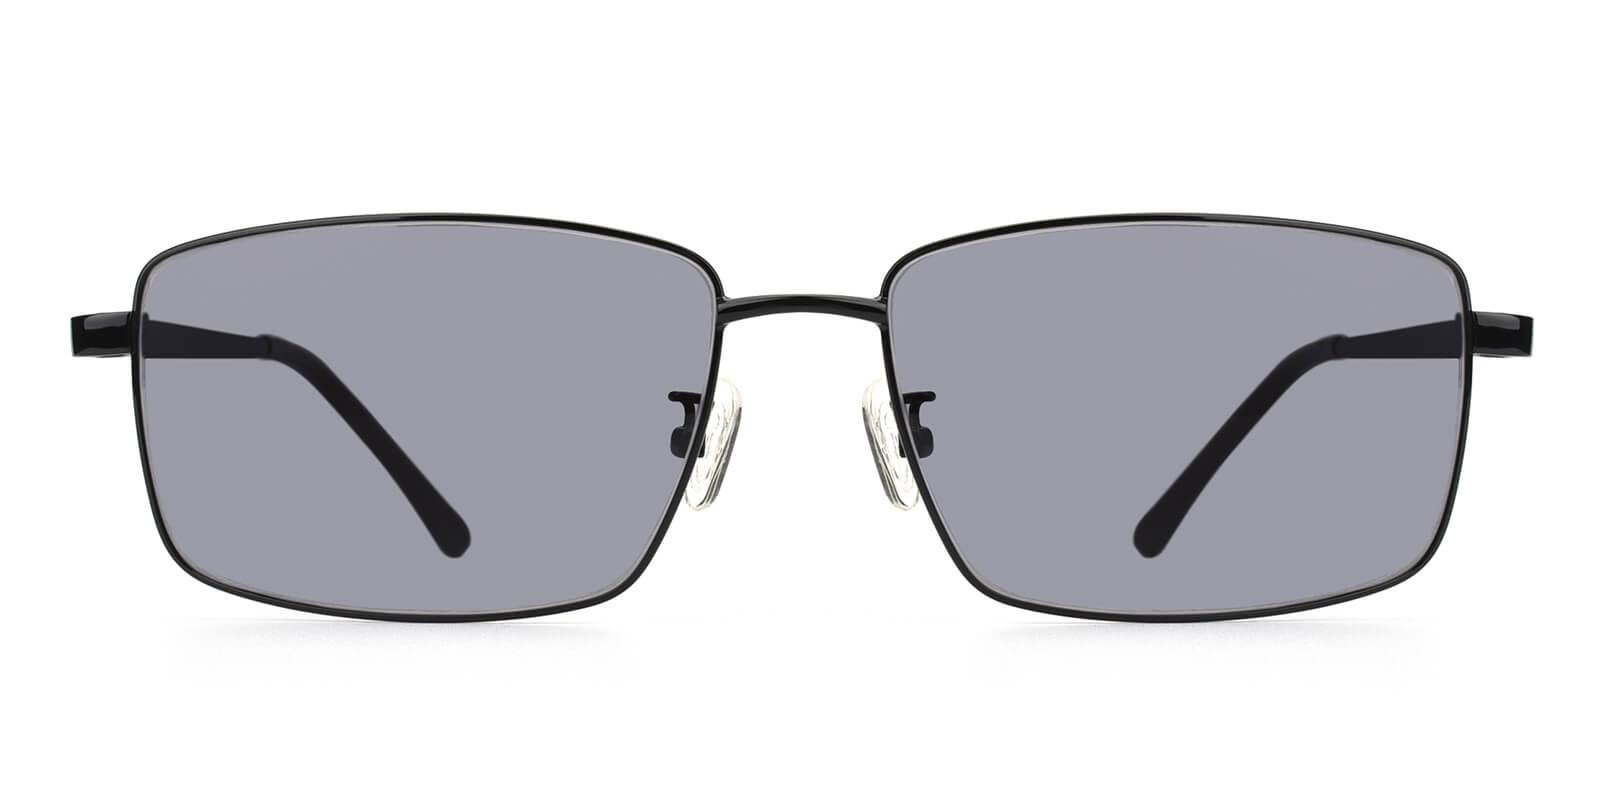 Sea-Black-Rectangle-Metal-Sunglasses-additional2